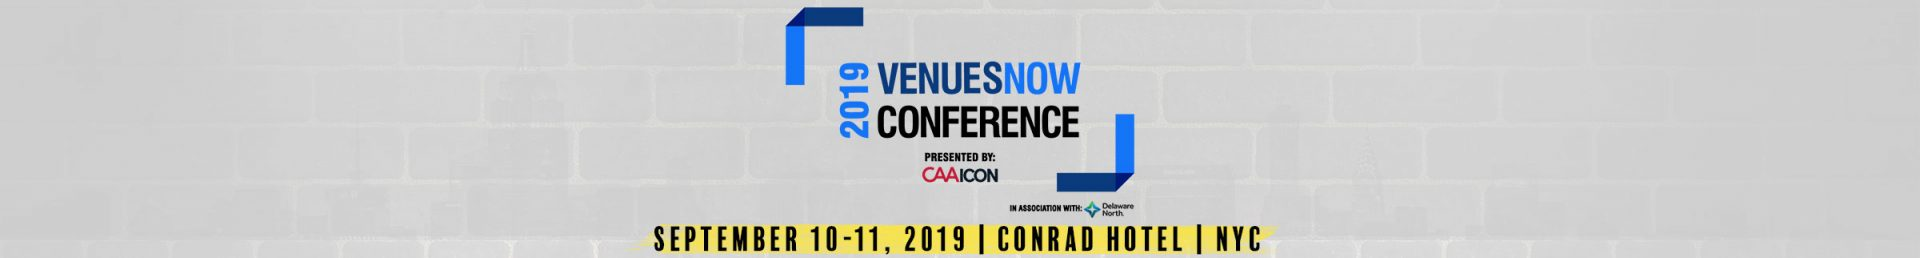 2019 VenuesNow Conference Wrapup